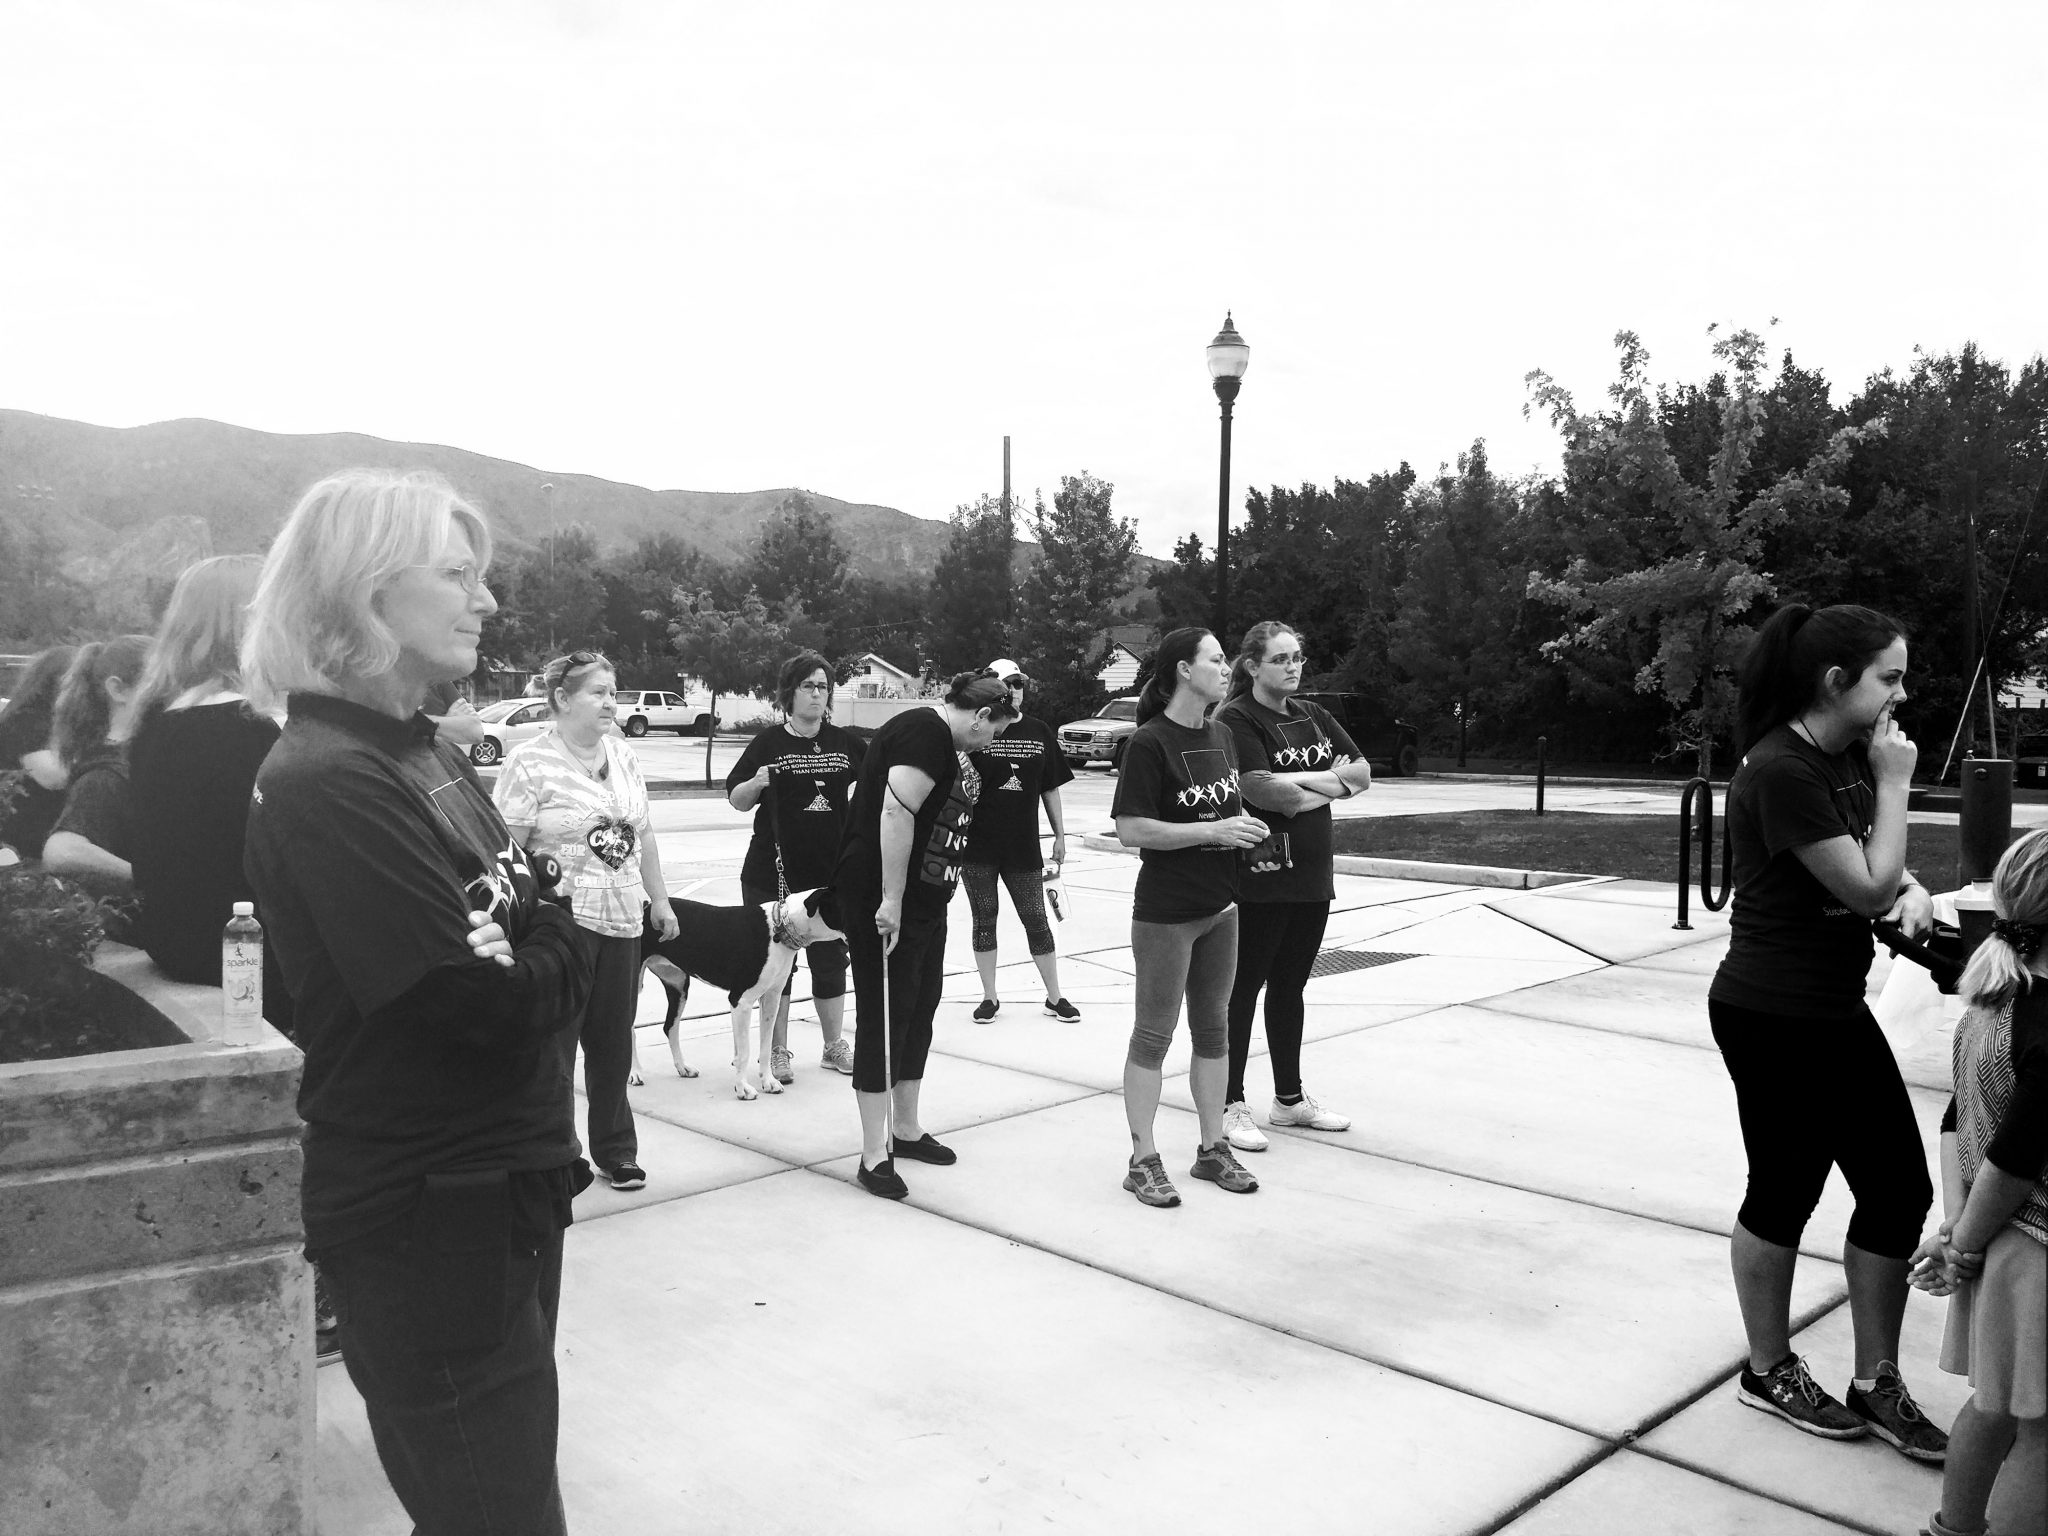 Residents Walk for Suicide Prevention